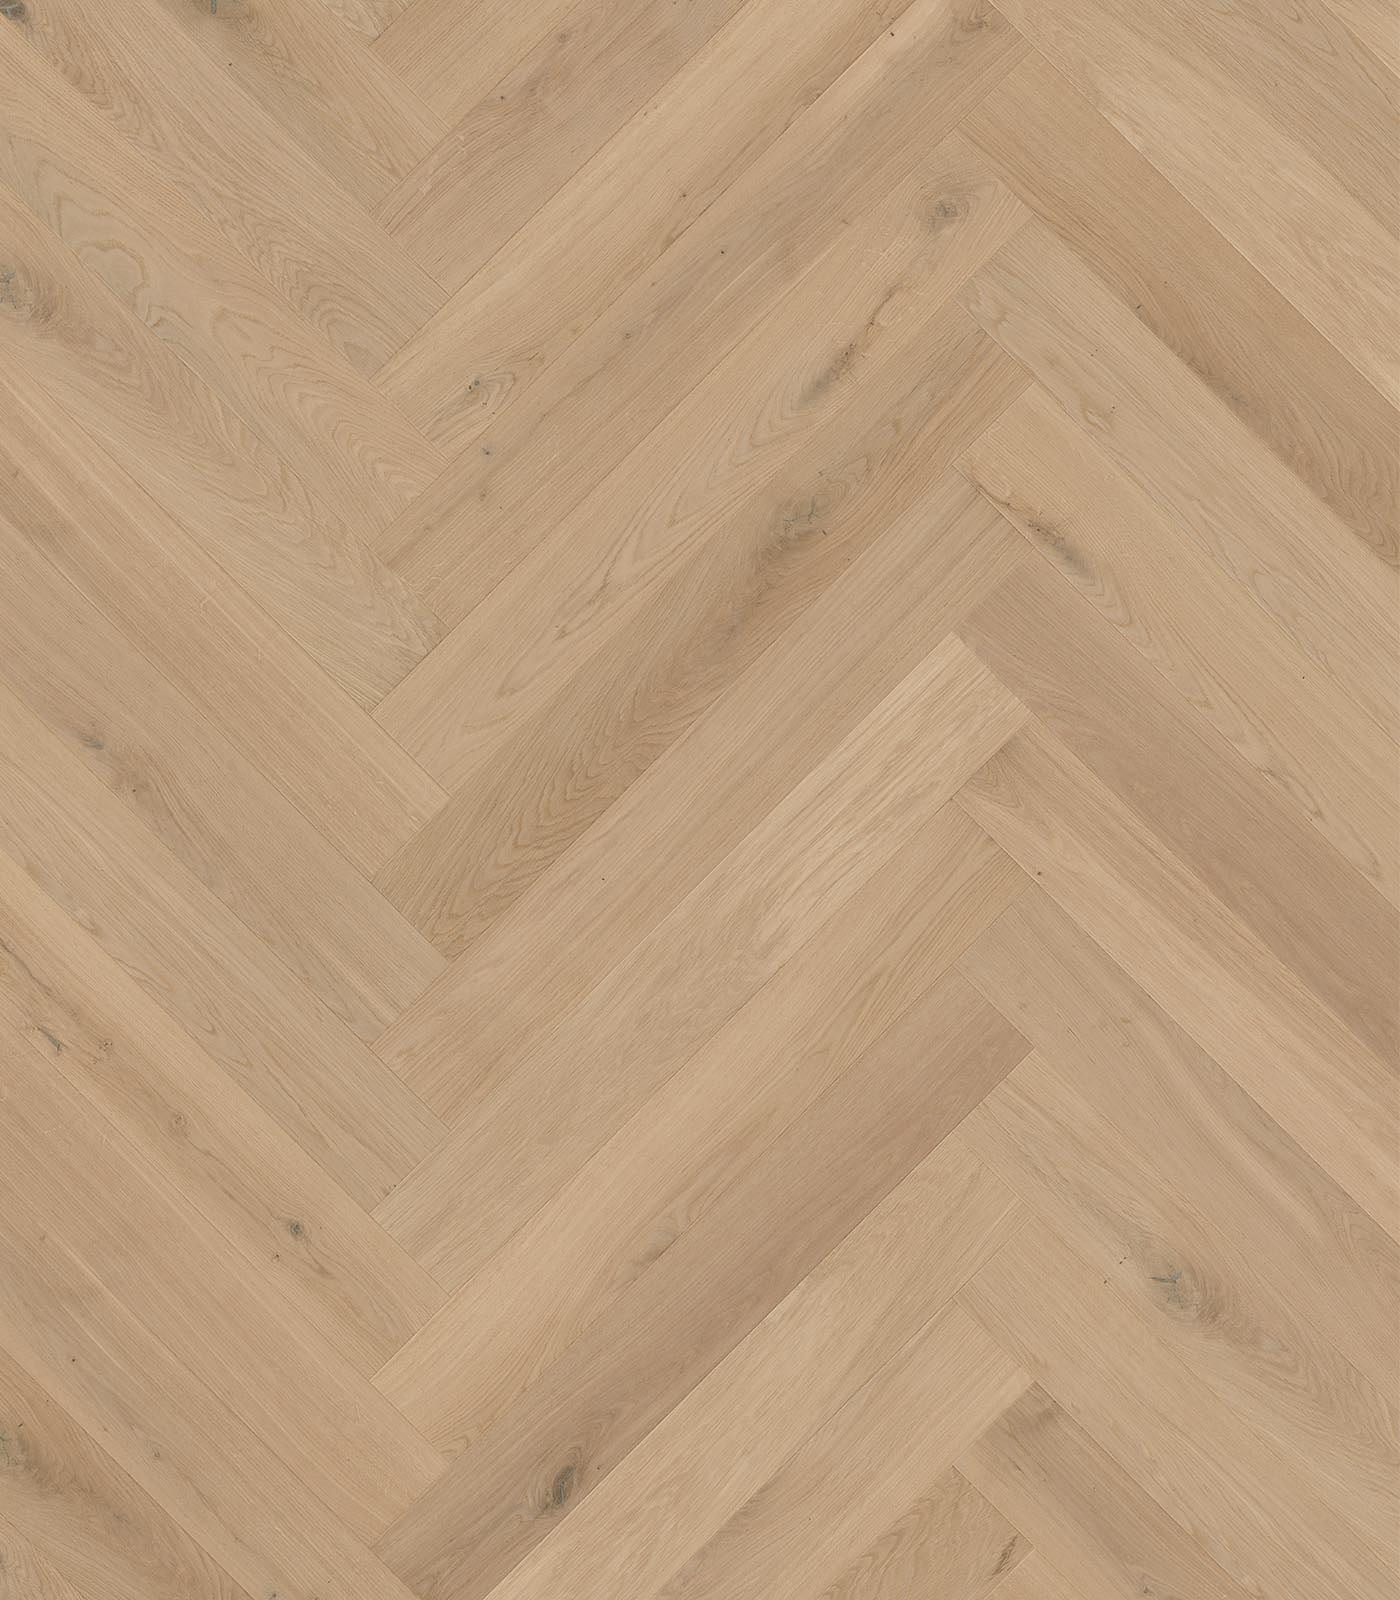 Fashion Collection-Absolute herringbone European Oak planks-Forestry Timber-flat